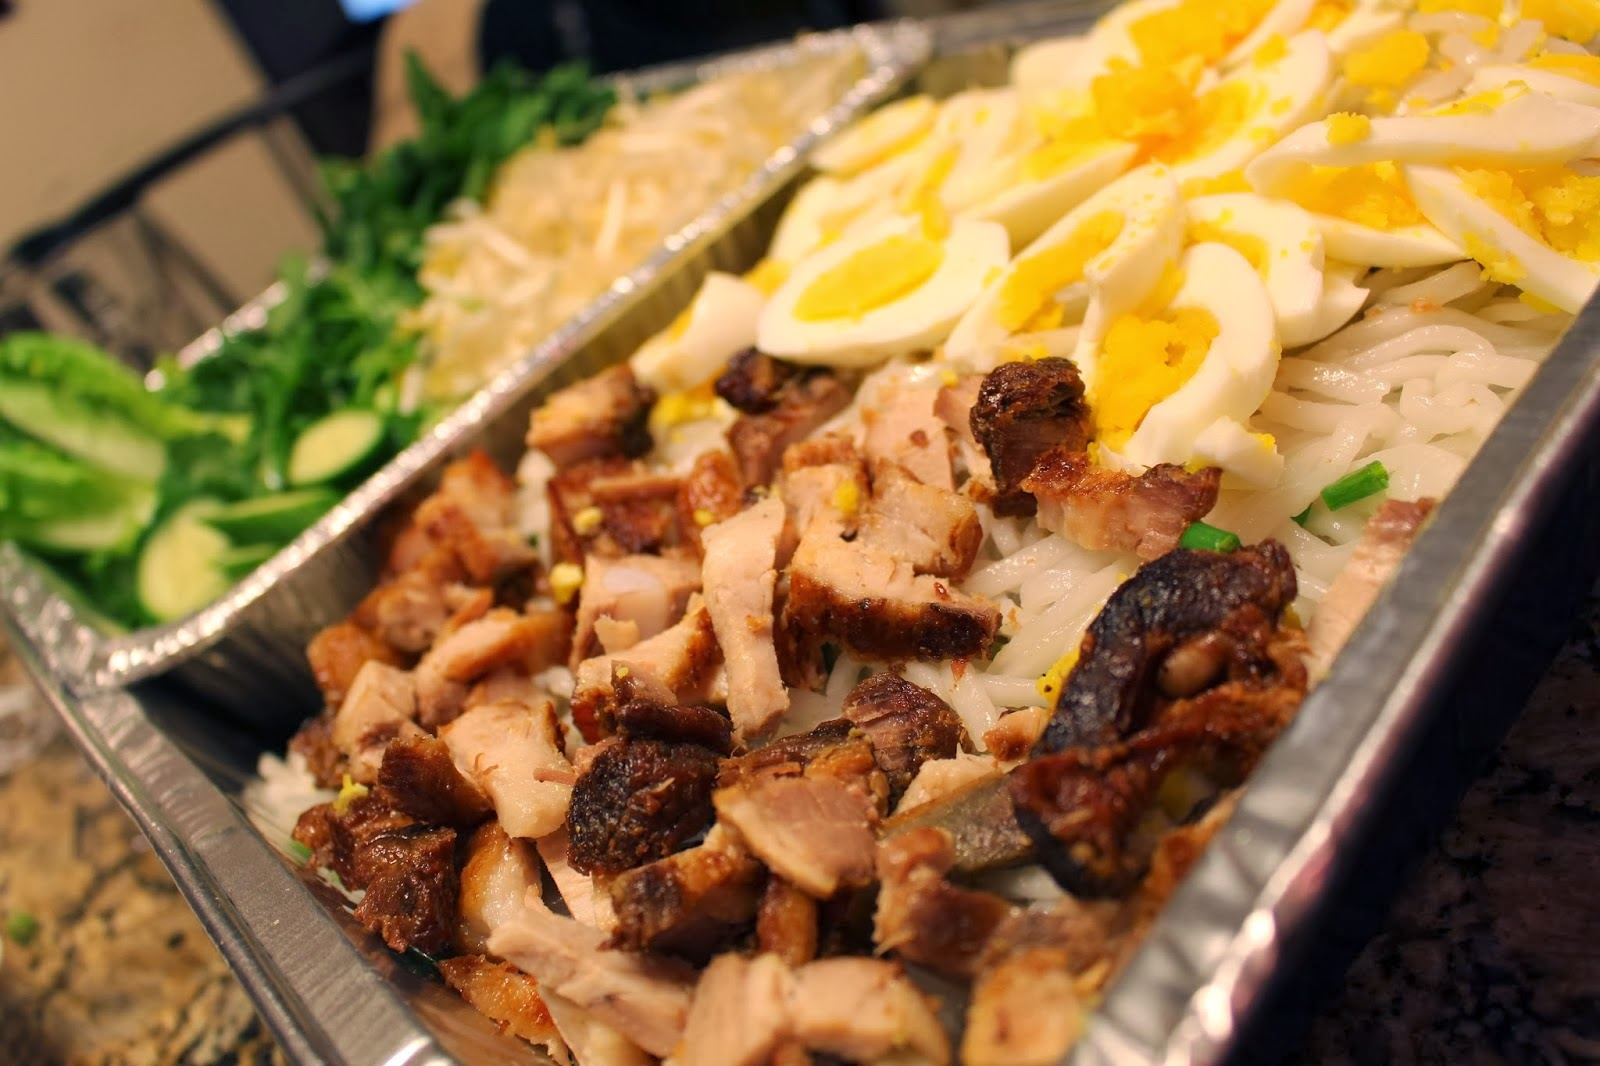 http://www.mami-eggroll.com/2014/02/mee-ka-la-cold-rice-noodle-vermicelli.html